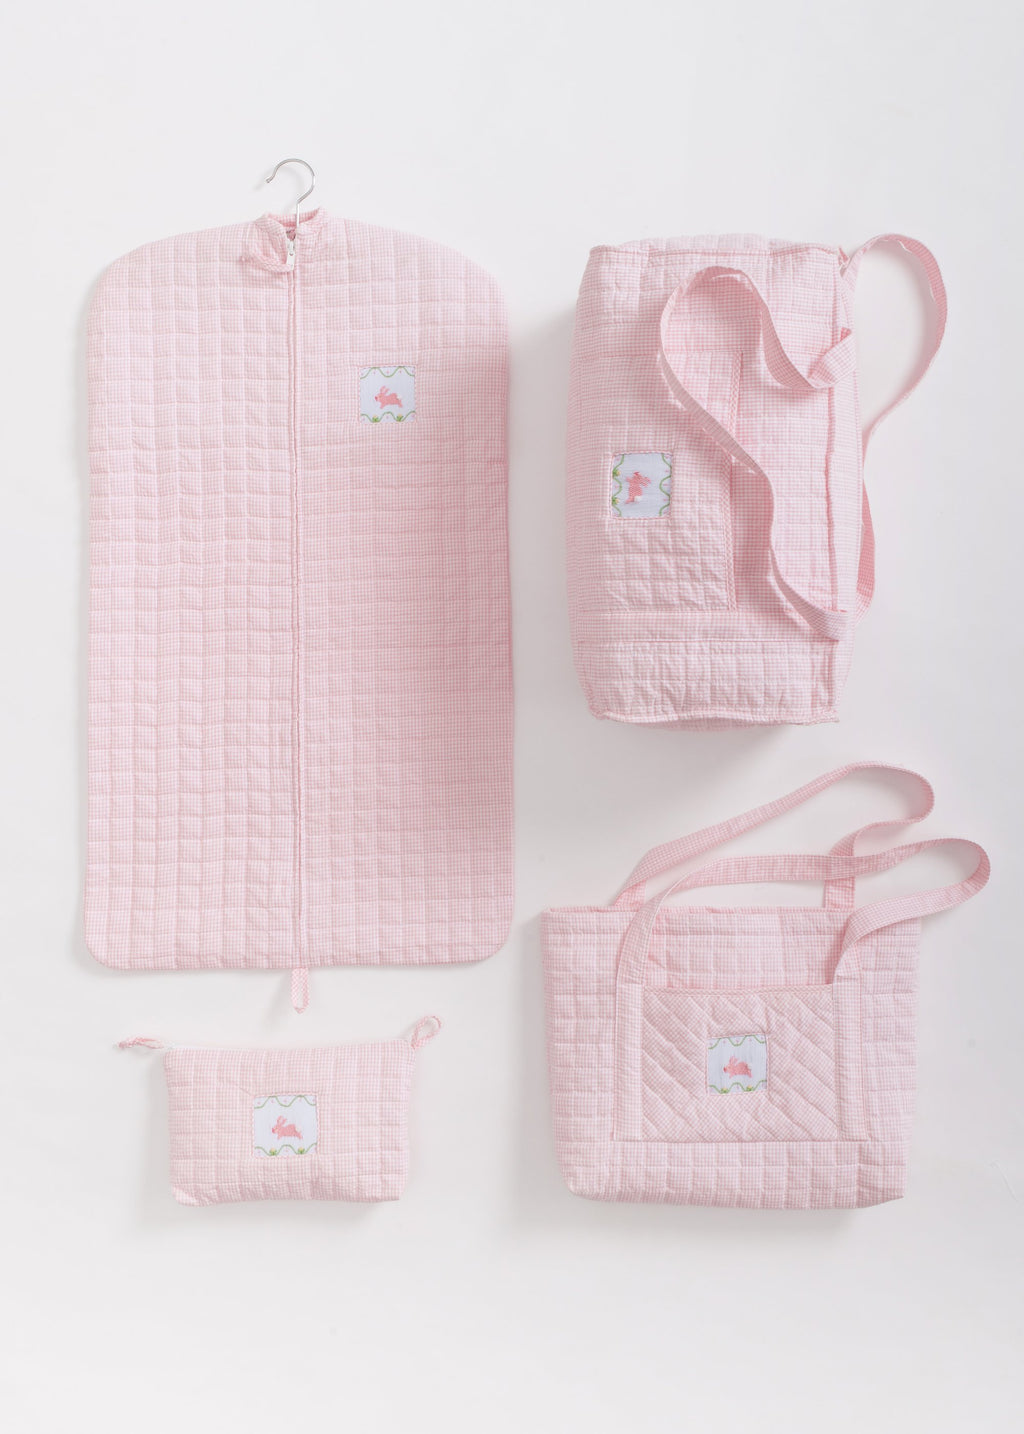 Quilted Pink Bunny Duffle Bag